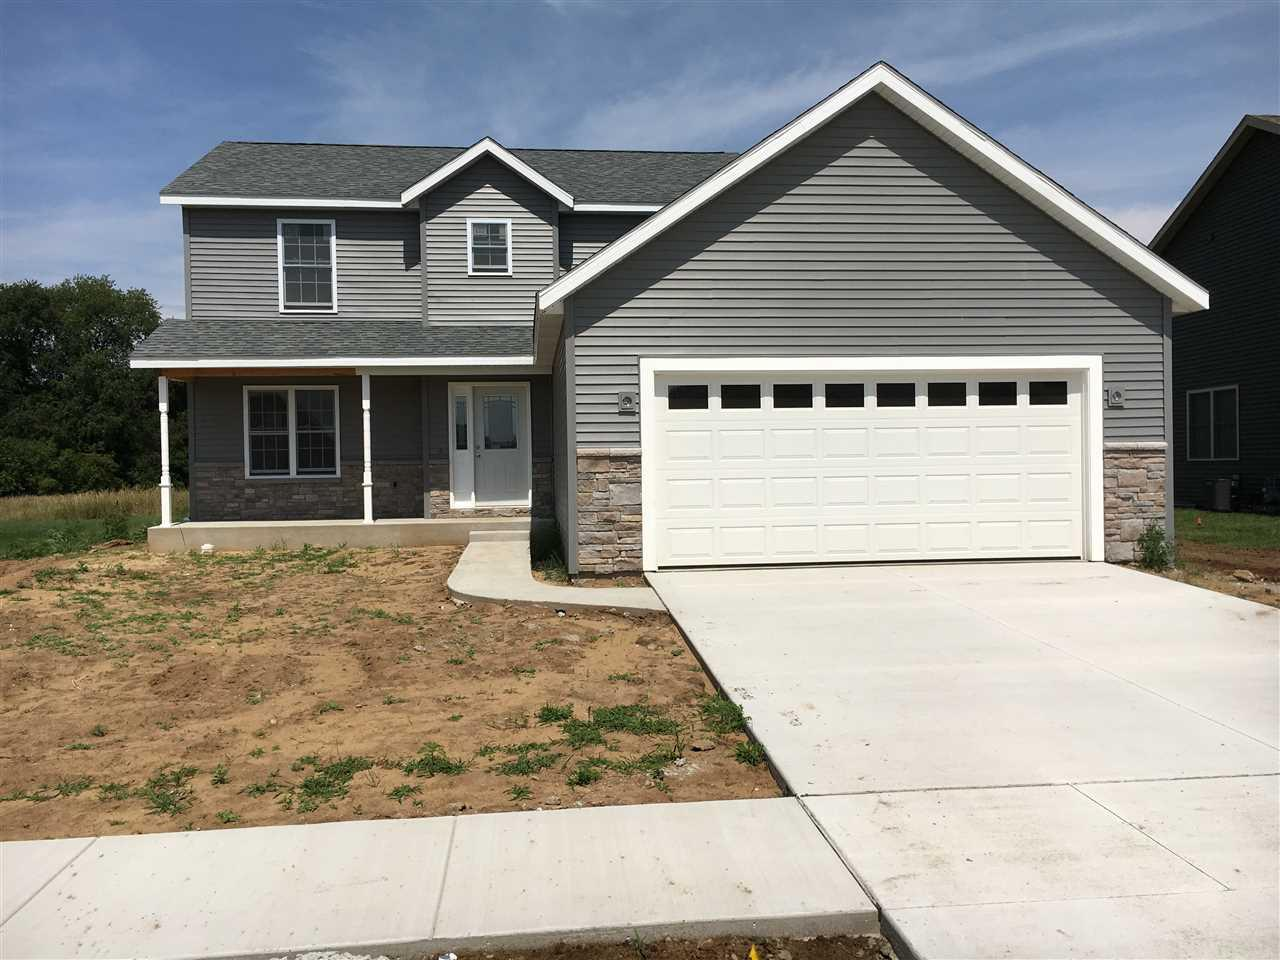 23117 Rumford, South Bend, IN 46628